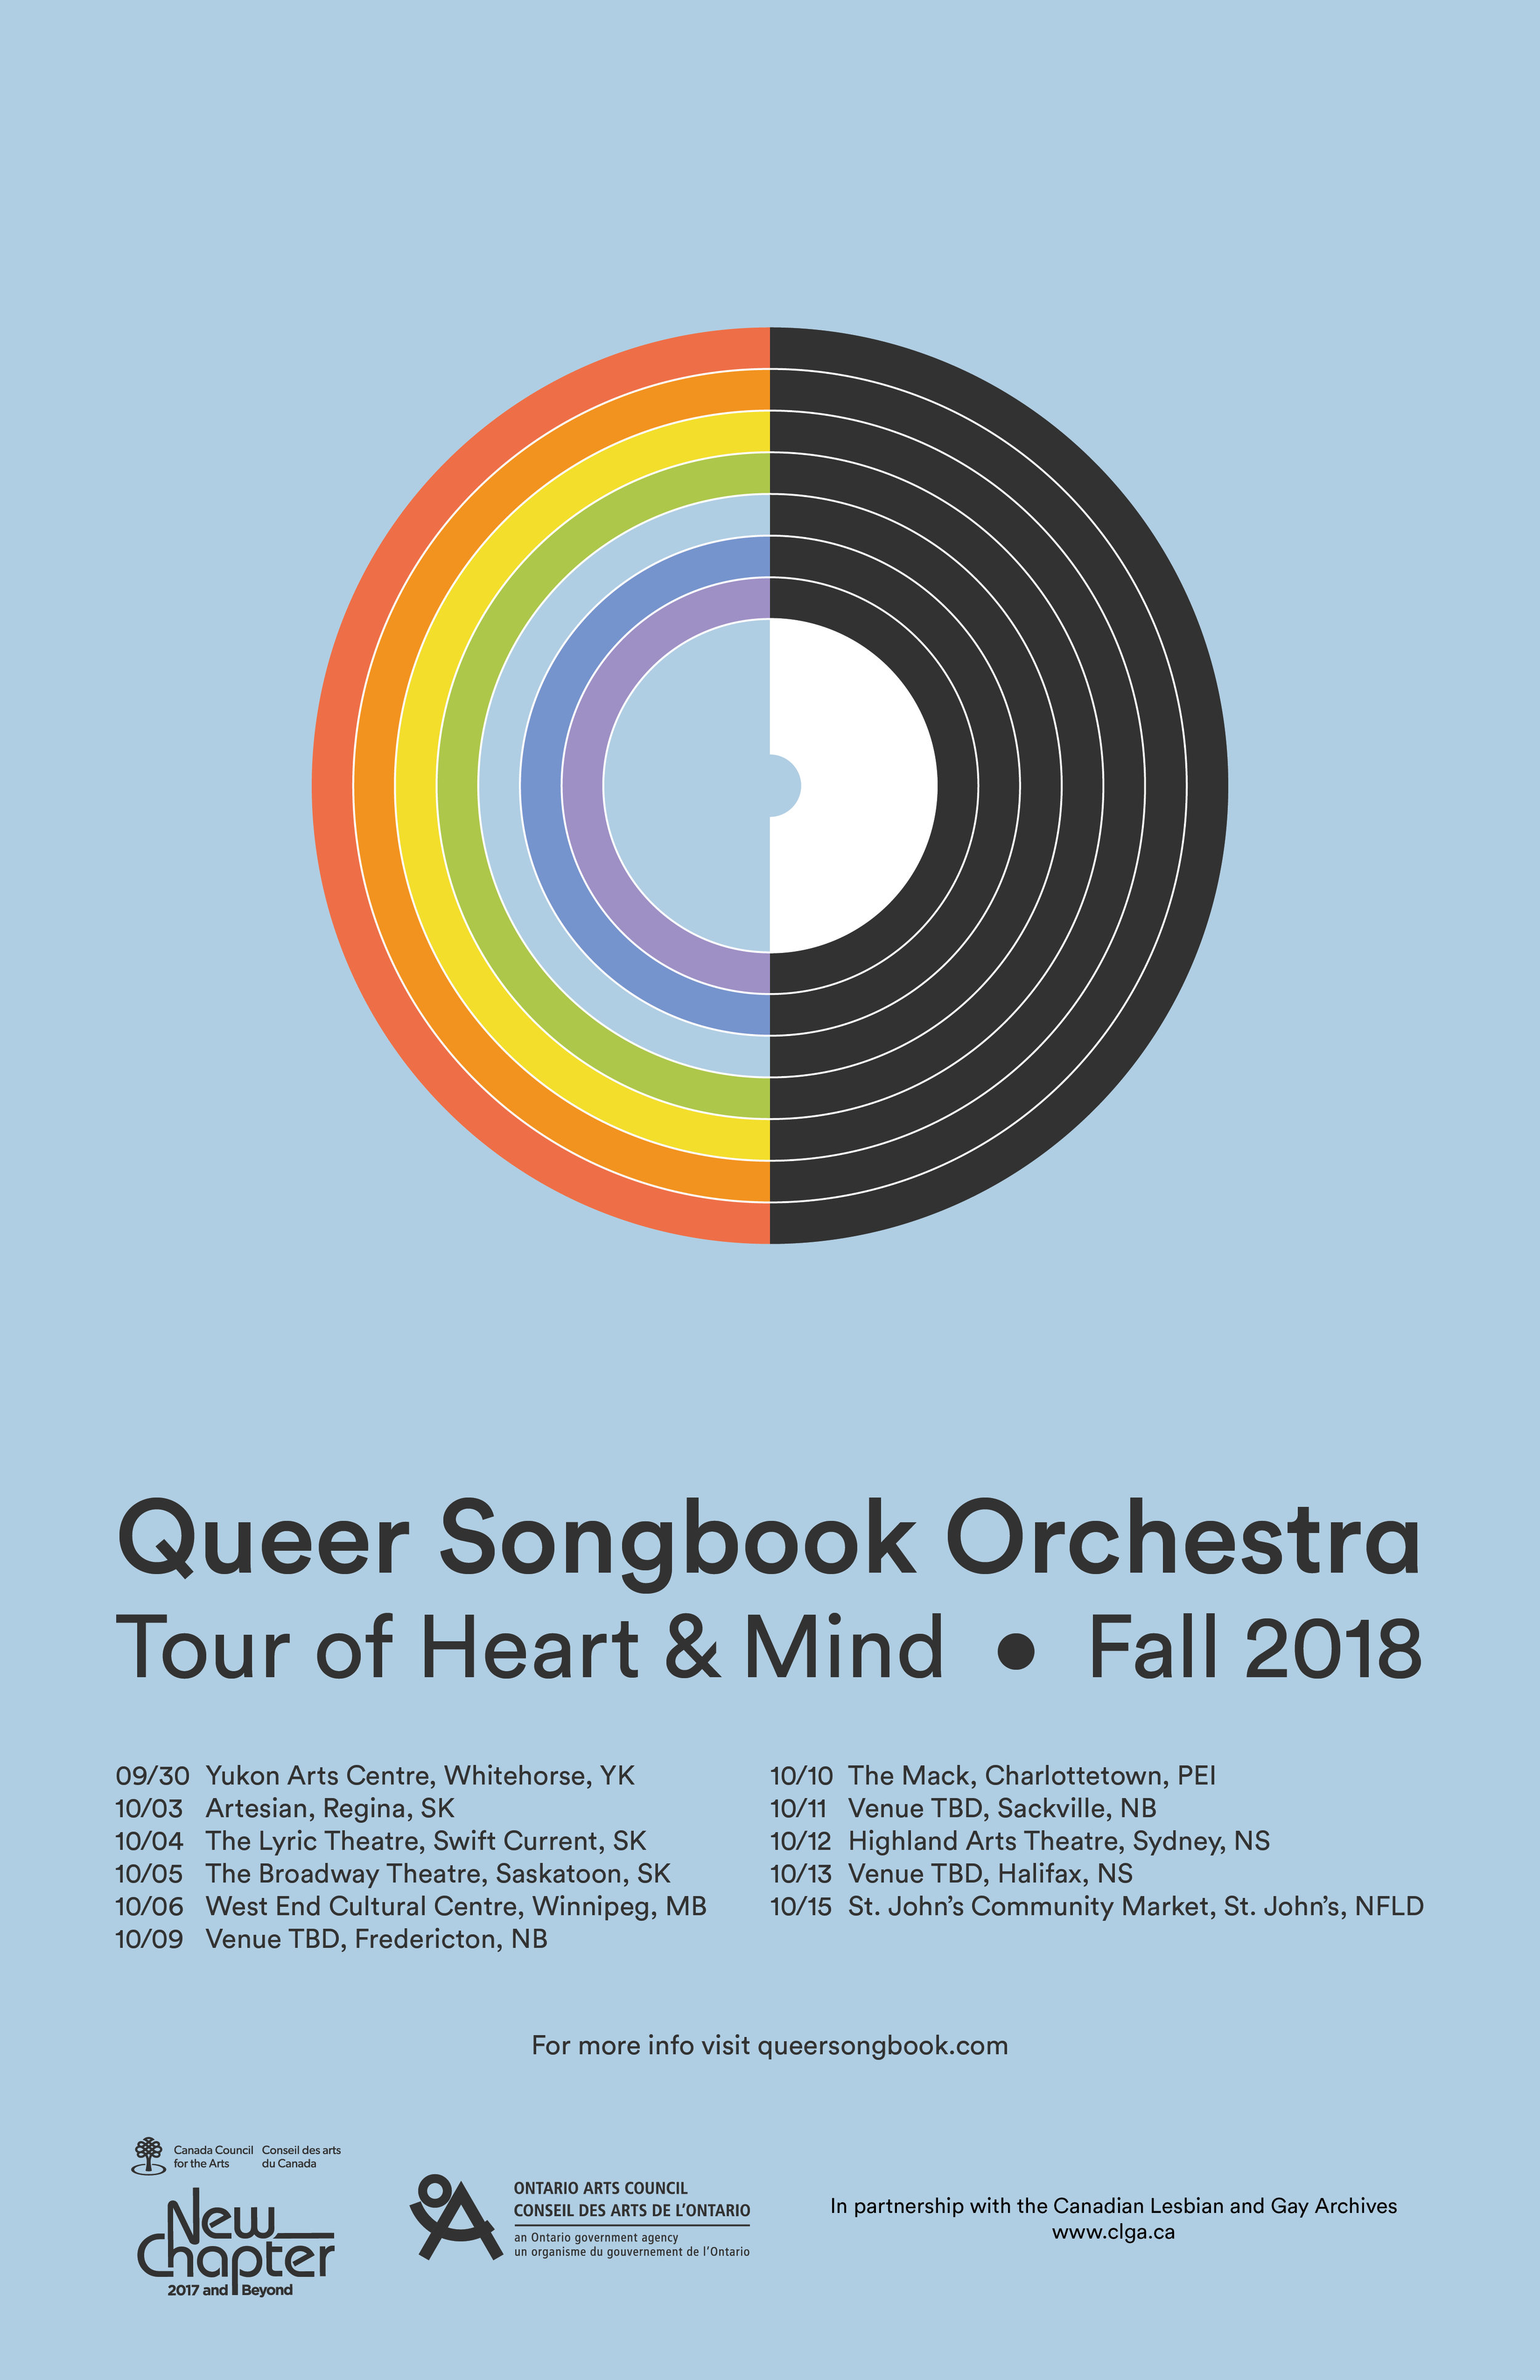 181006 Queer Songbook Orchestra.jpg